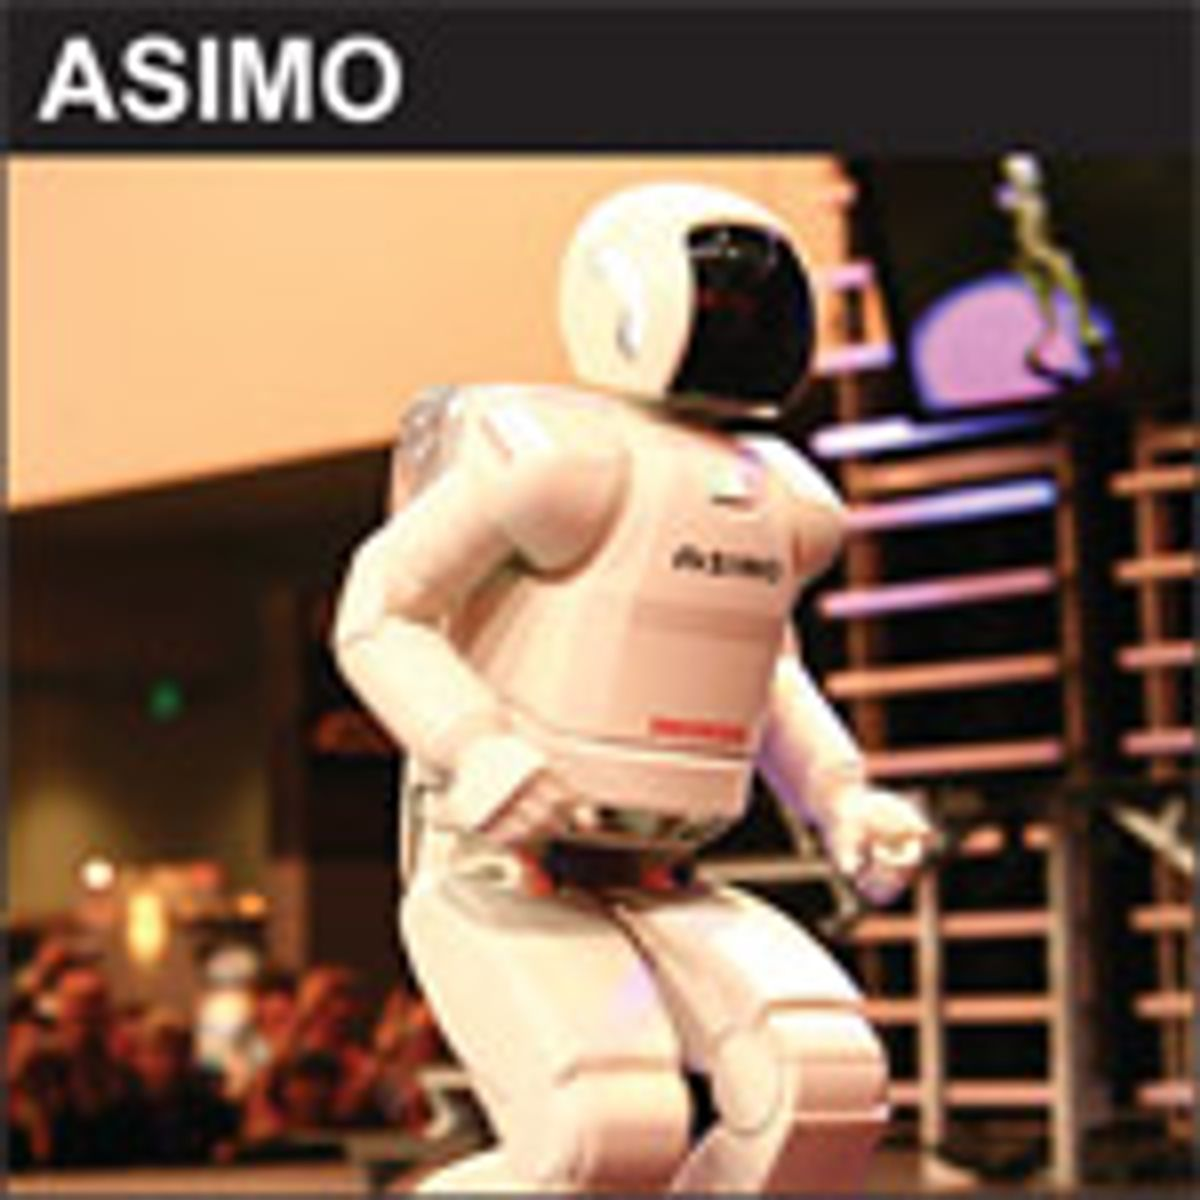 These Humanoid Robots Could Kick Your Asimo